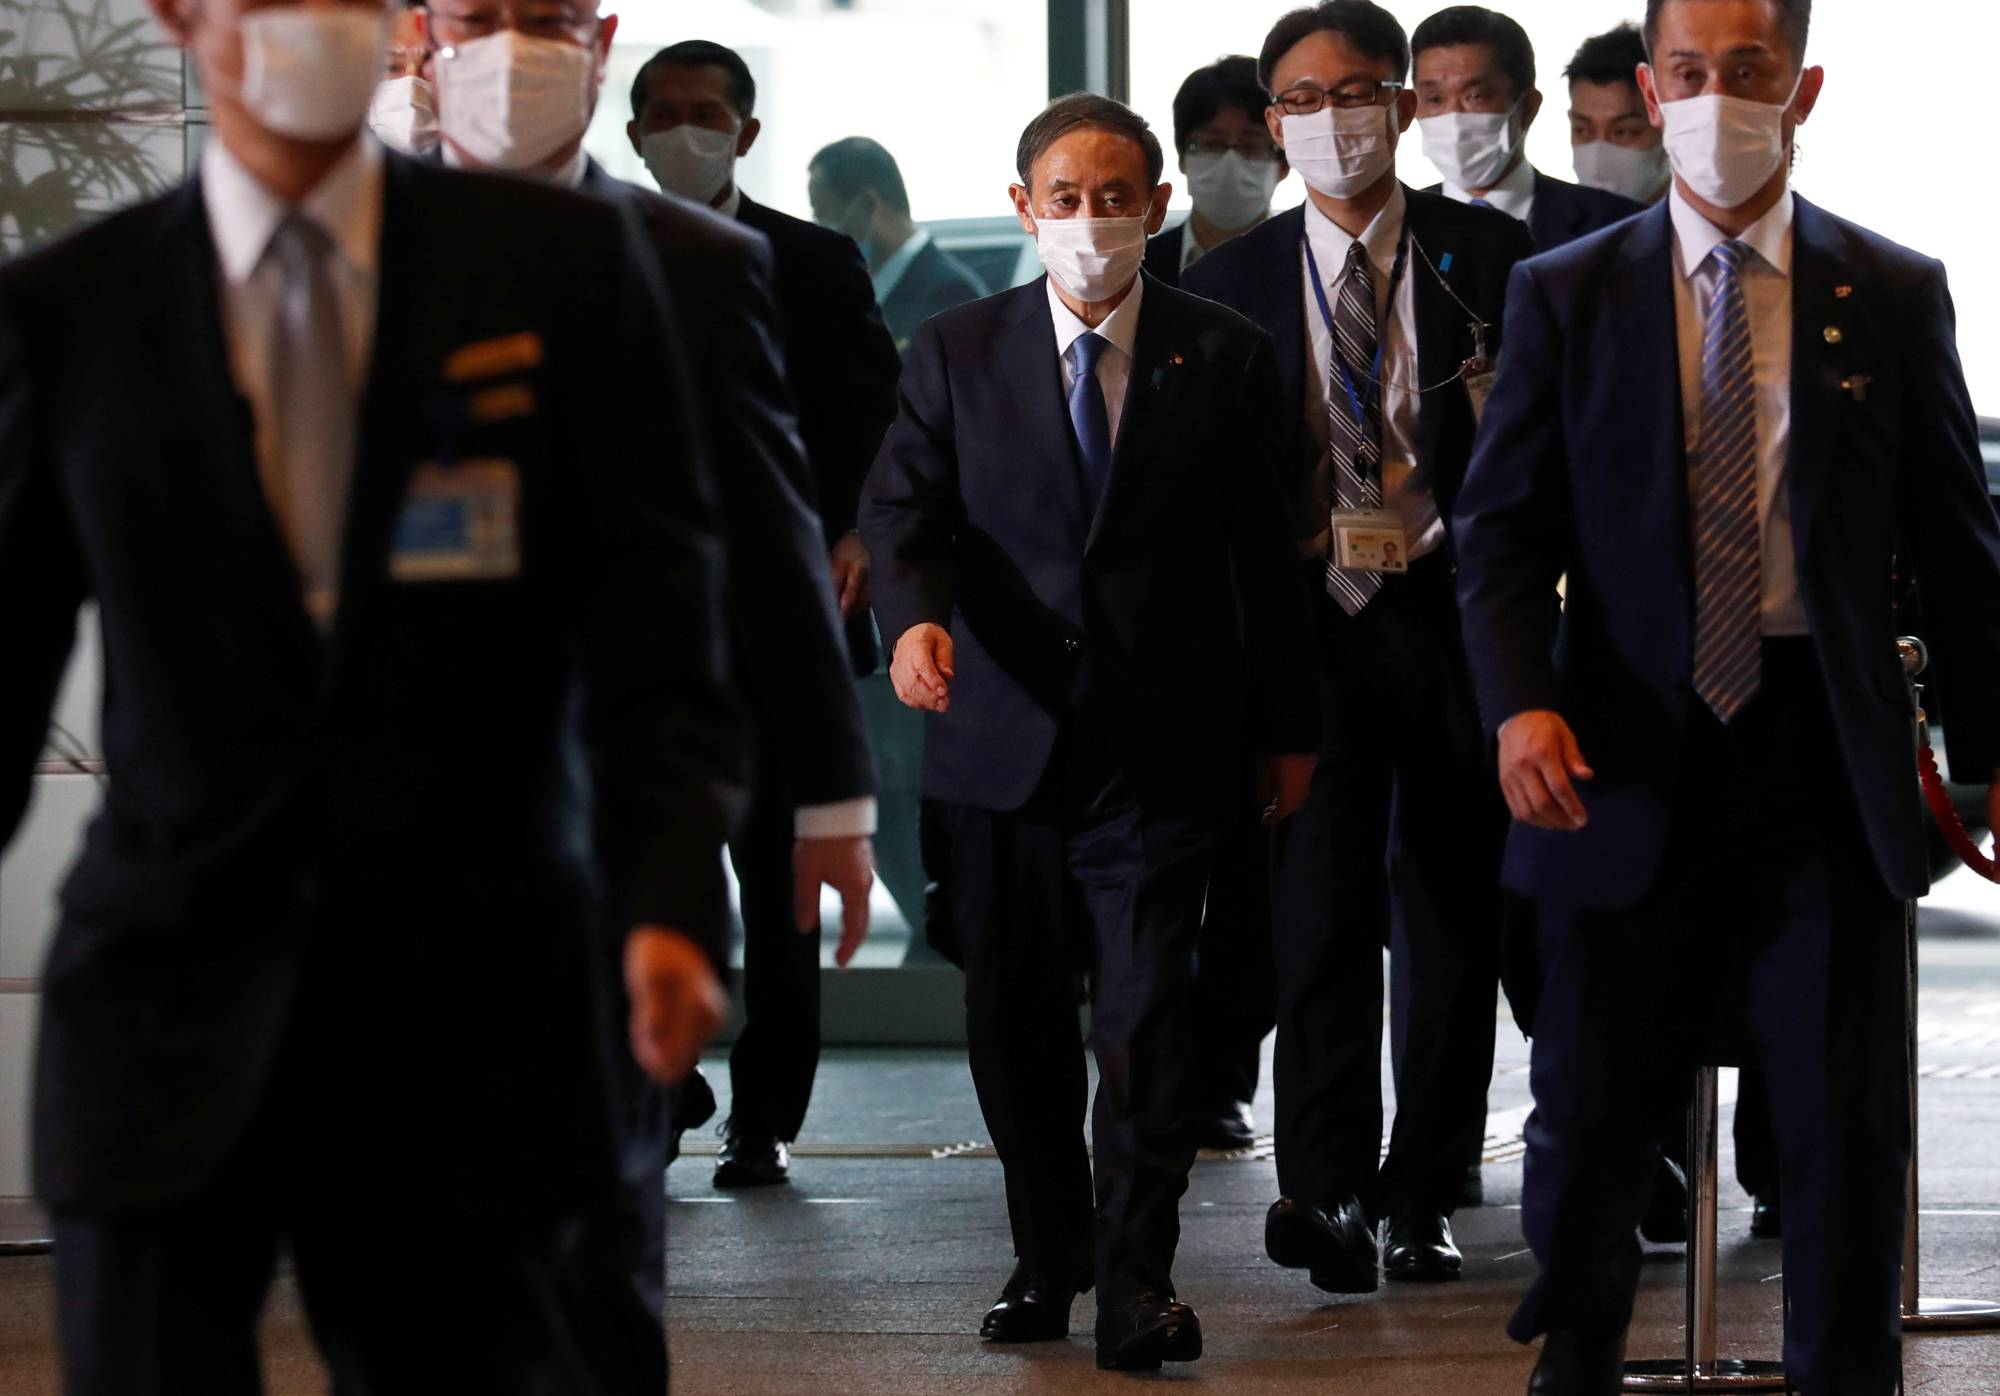 Newly elected Prime Minister Yoshihide Suga arrives at the Prime Minister's Office in Tokyo on Wednesday. | REUTERS